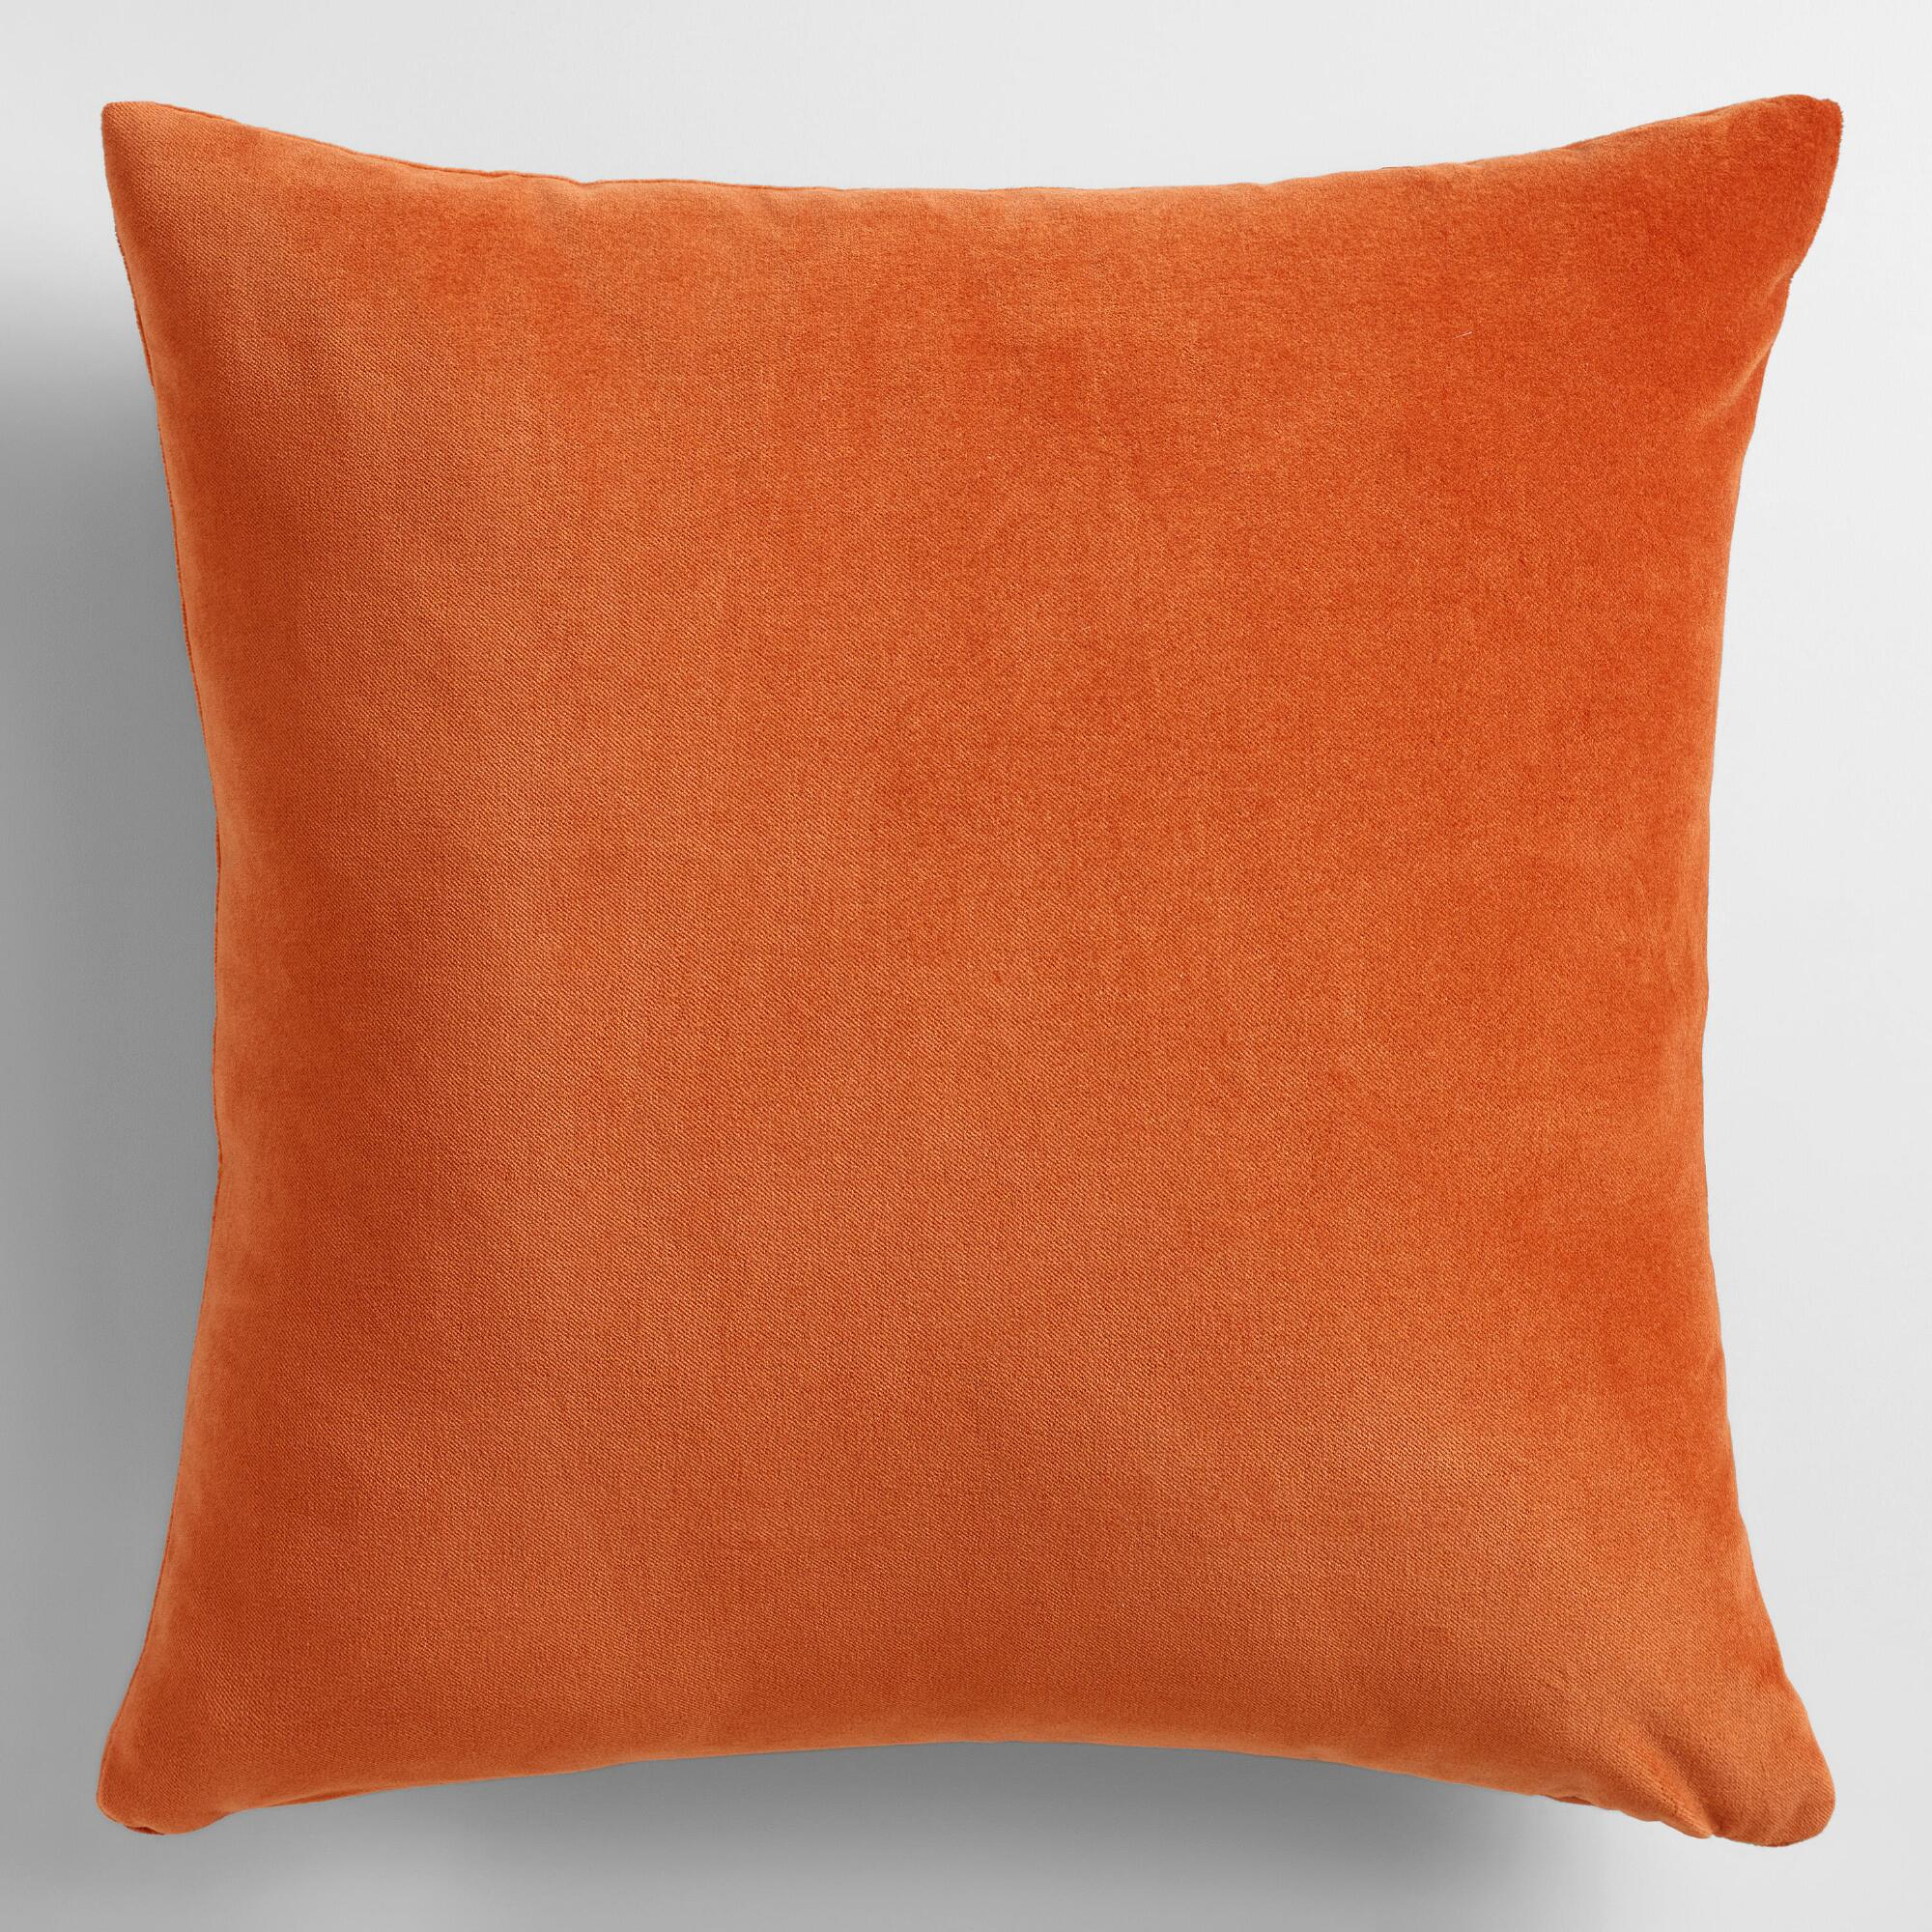 Rooibos Orange Velvet Throw Pillow World Market